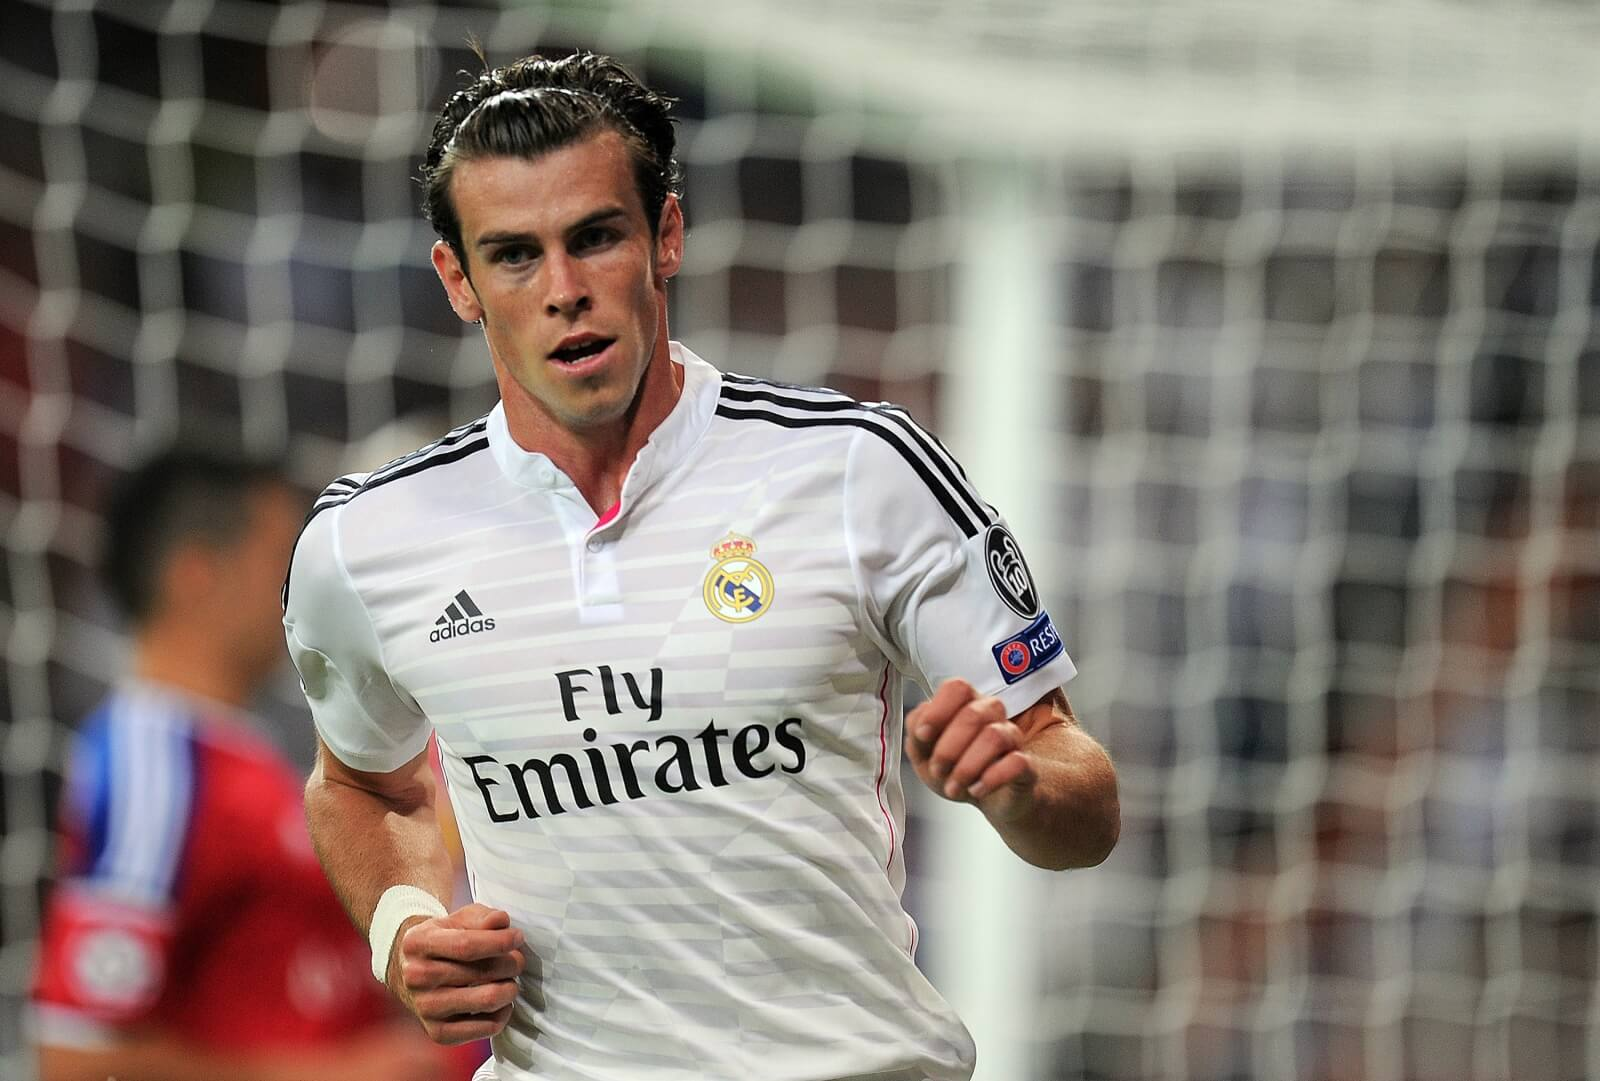 #10 Gareth Bale | Incredible Pay Days Of The Celebs | Image Source: ibtimes.co.uk